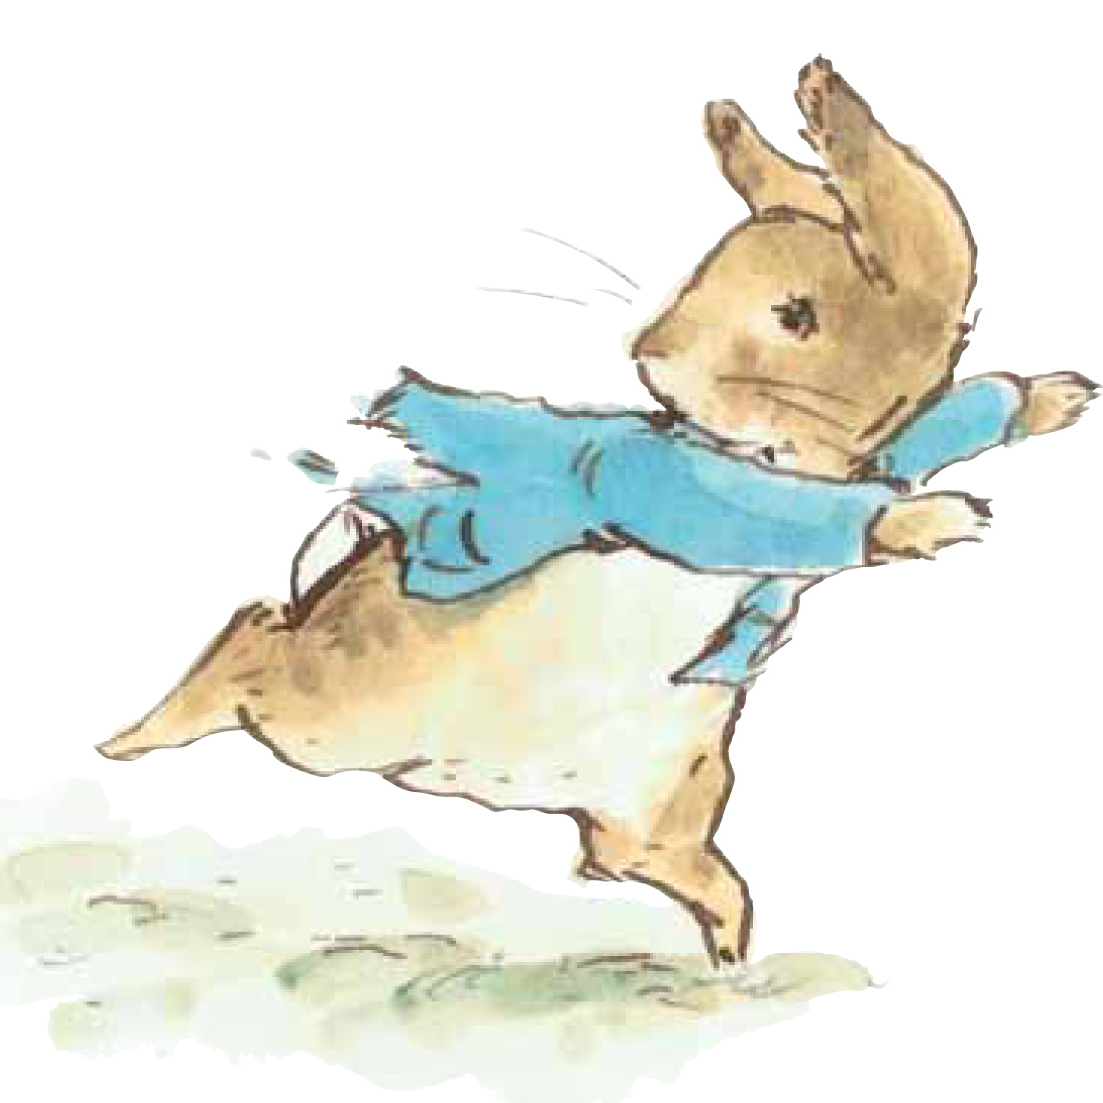 7: Based on the original stories by Beatrix Potter, Emma Thompson's tale celebrates 110 years of Peter Rabbit. In this story, Peter's adventures take him beyond the boundaries of Mr. McGregor's garden and all the way to Scotland.